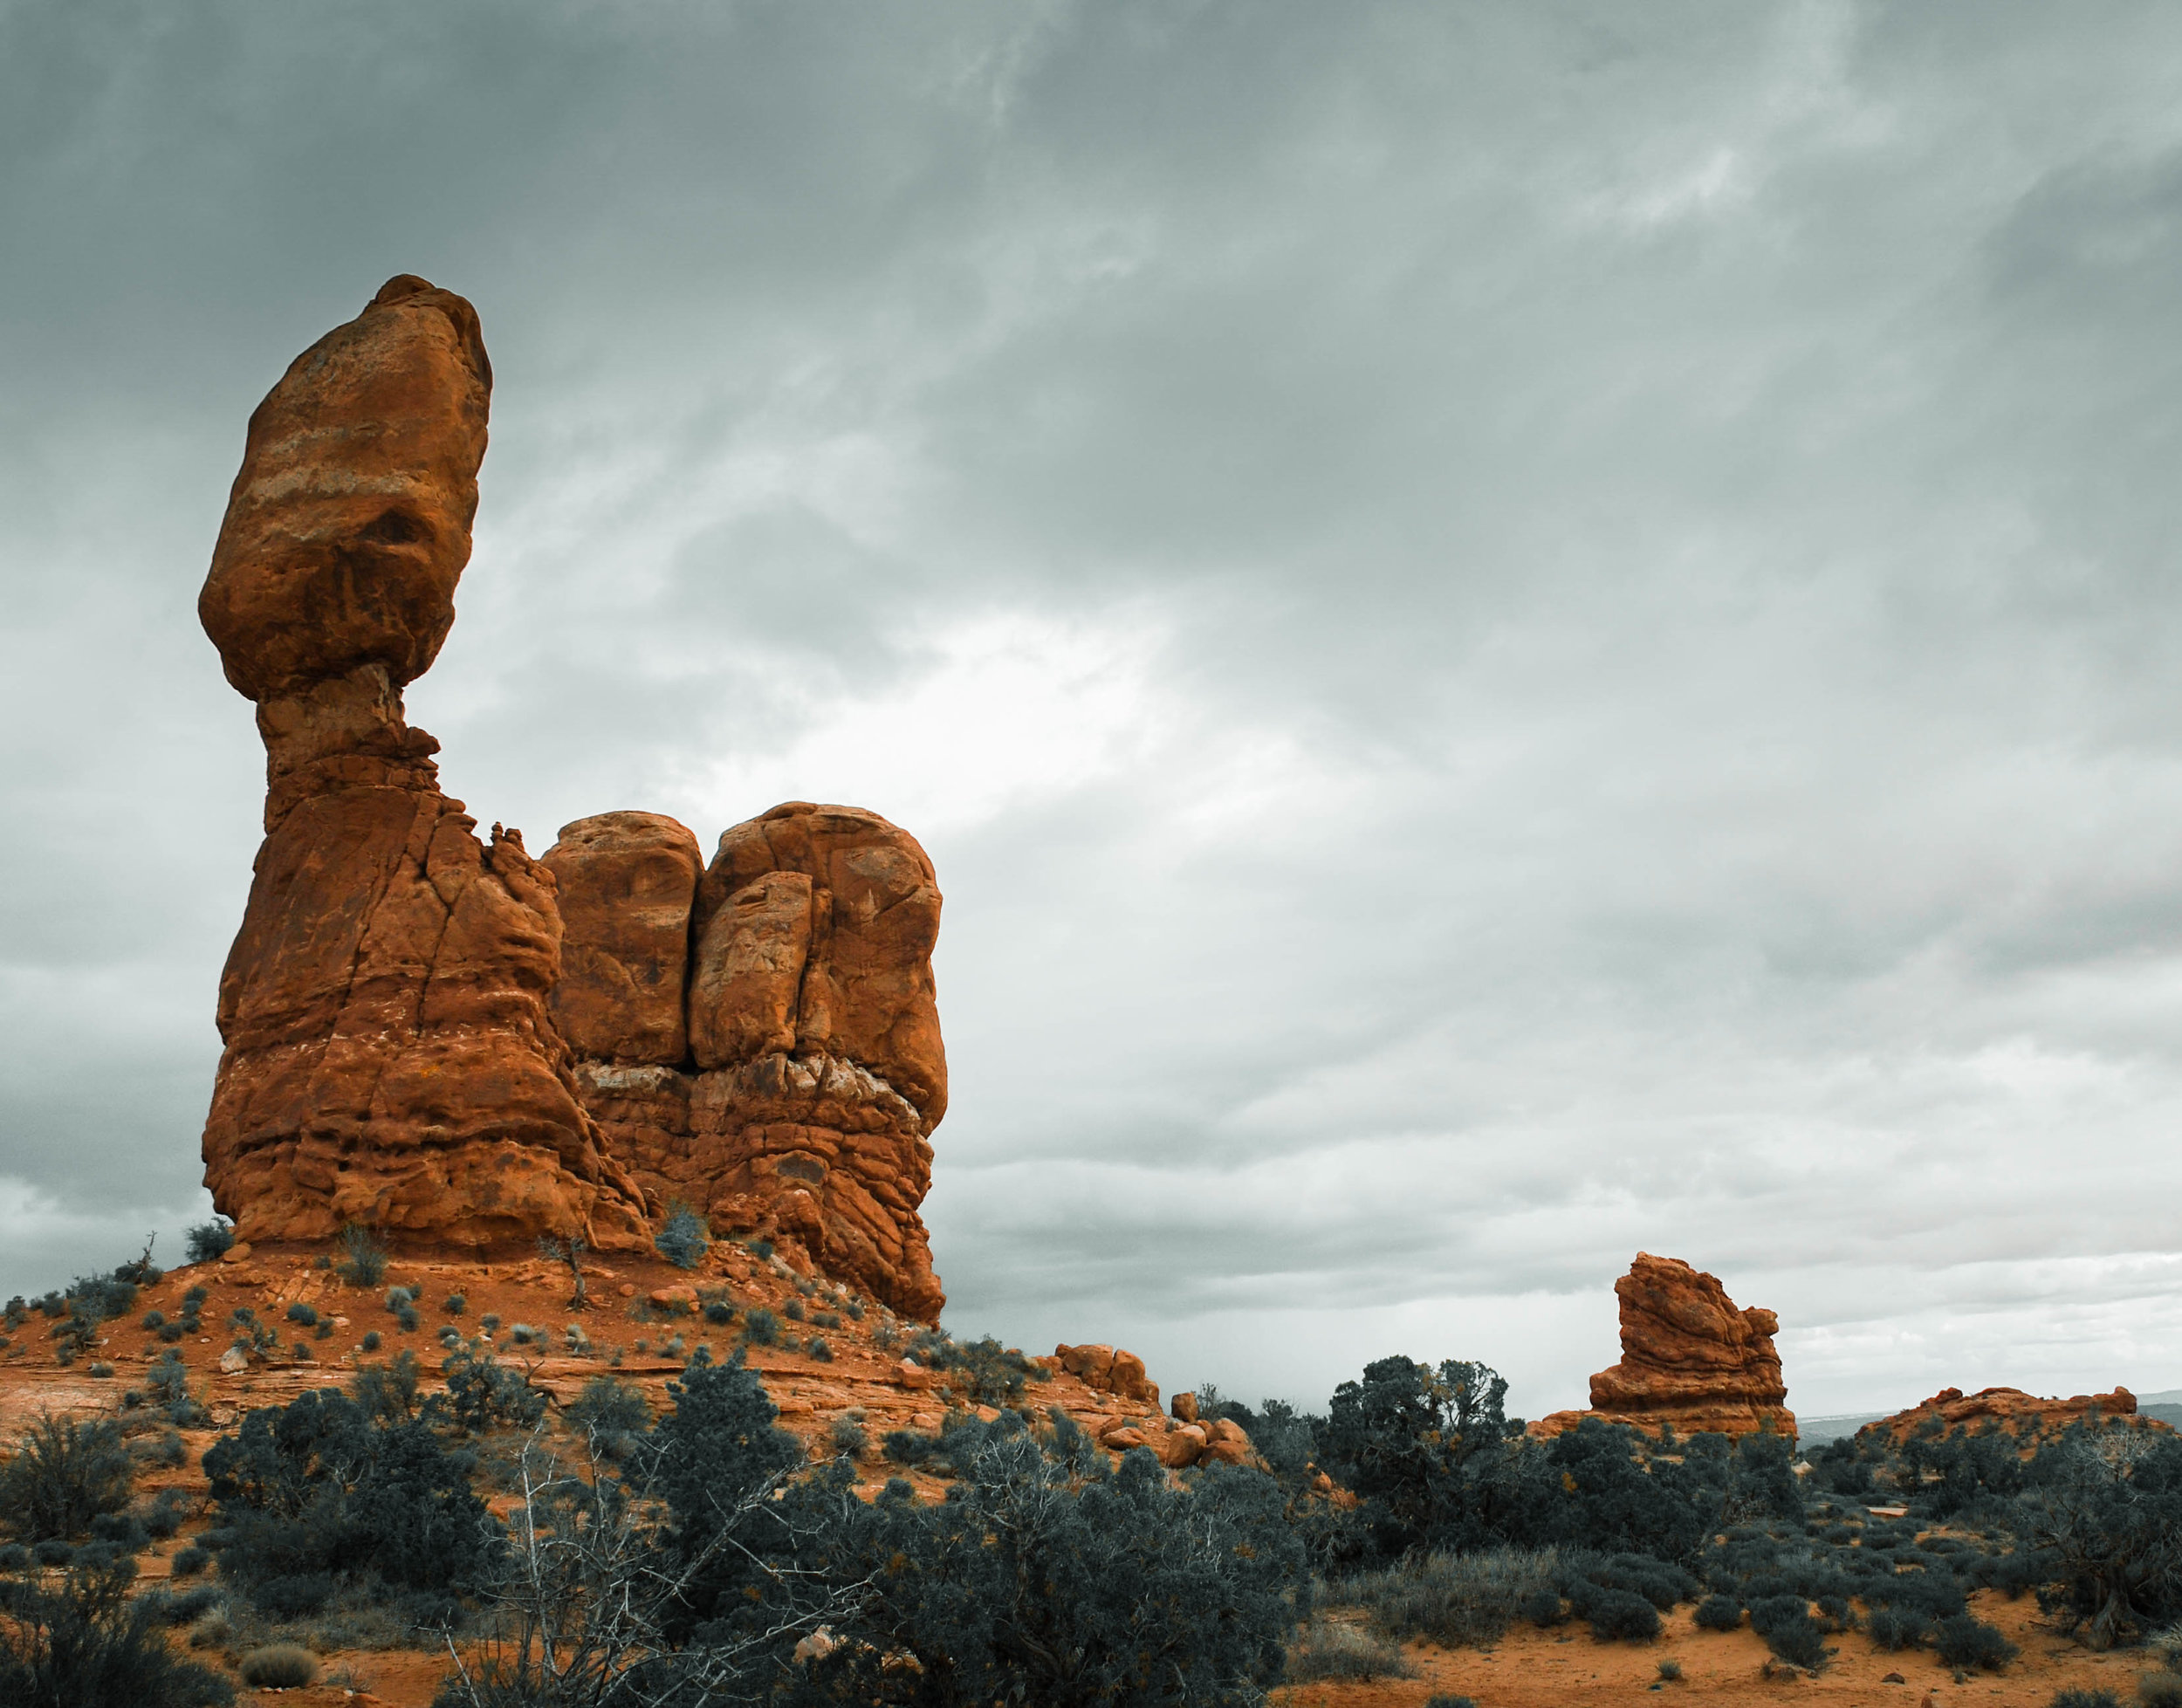 Balanced Rock was one of the first sights we saw our very first time at Arches National Park.